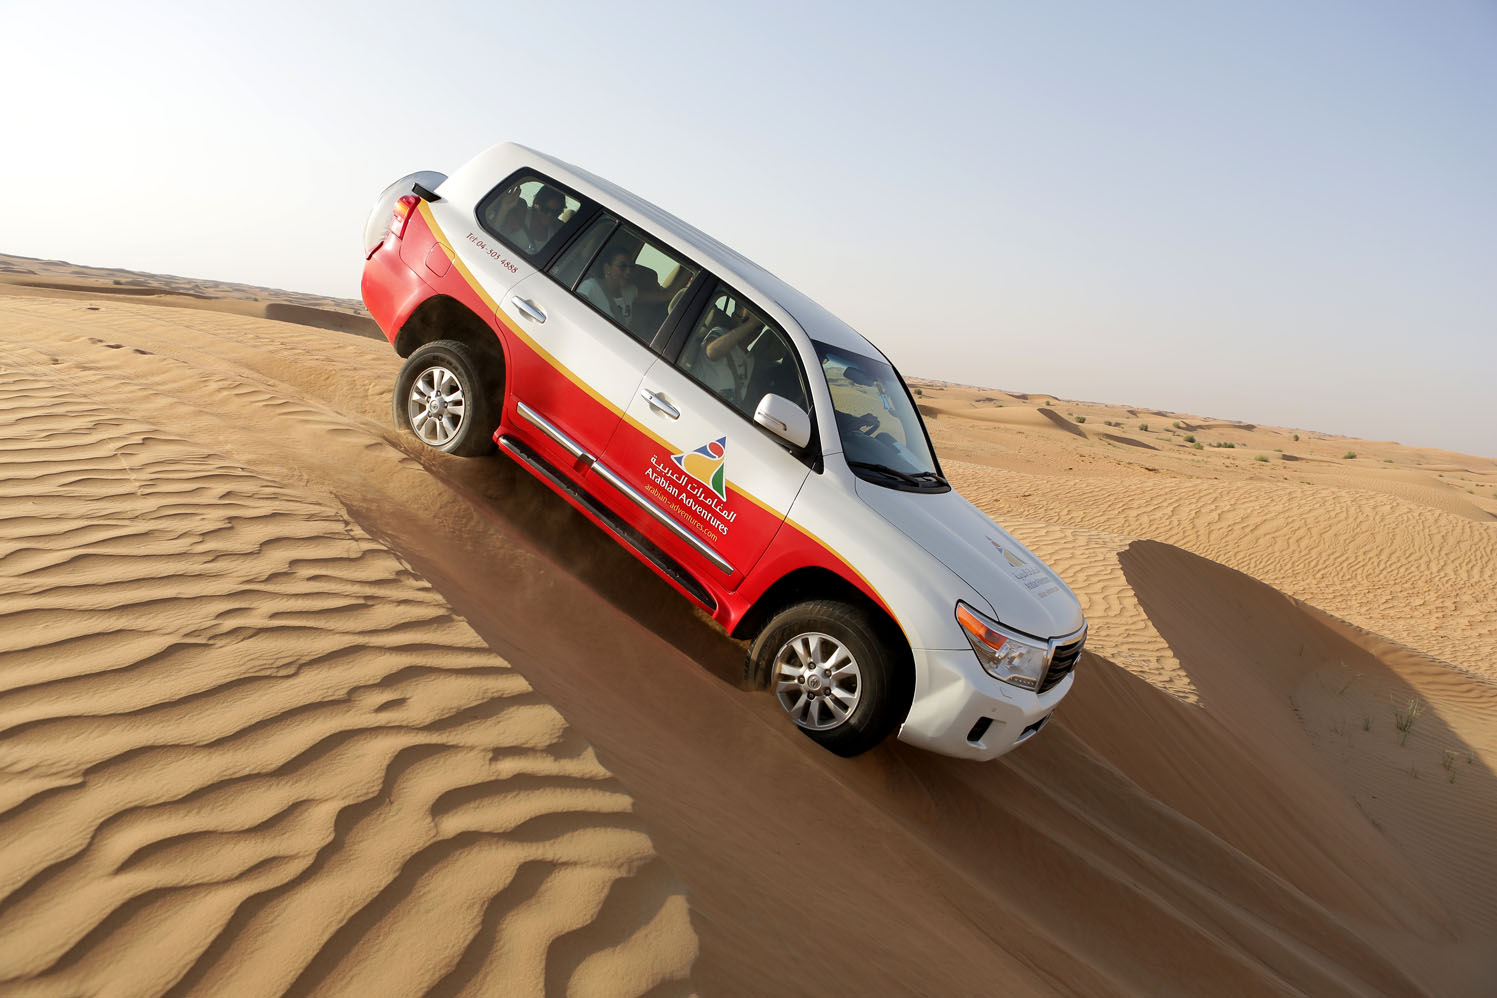 Fujitsu Dubai Incentive Travel desert jeep adventure